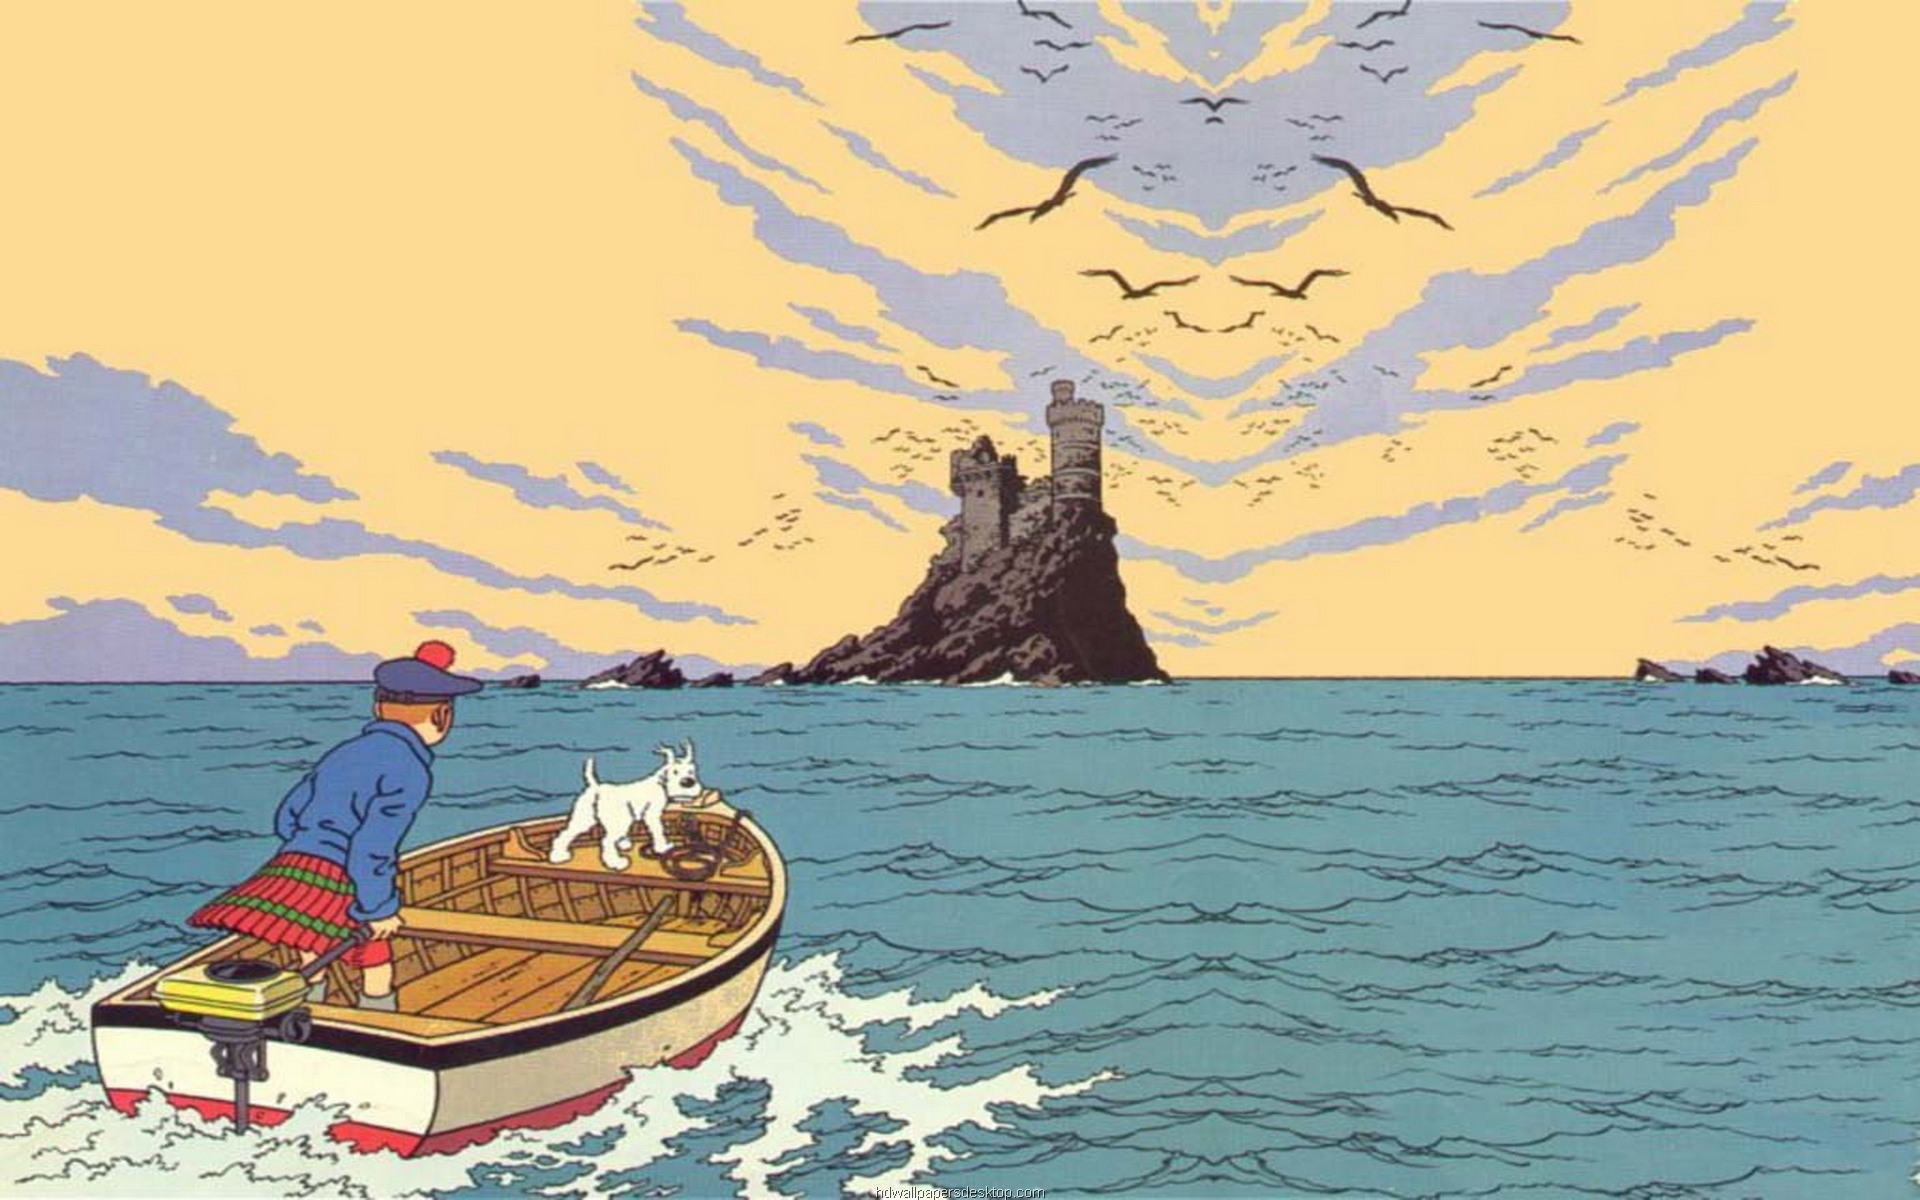 tintin and snowy wallpaper - photo #20